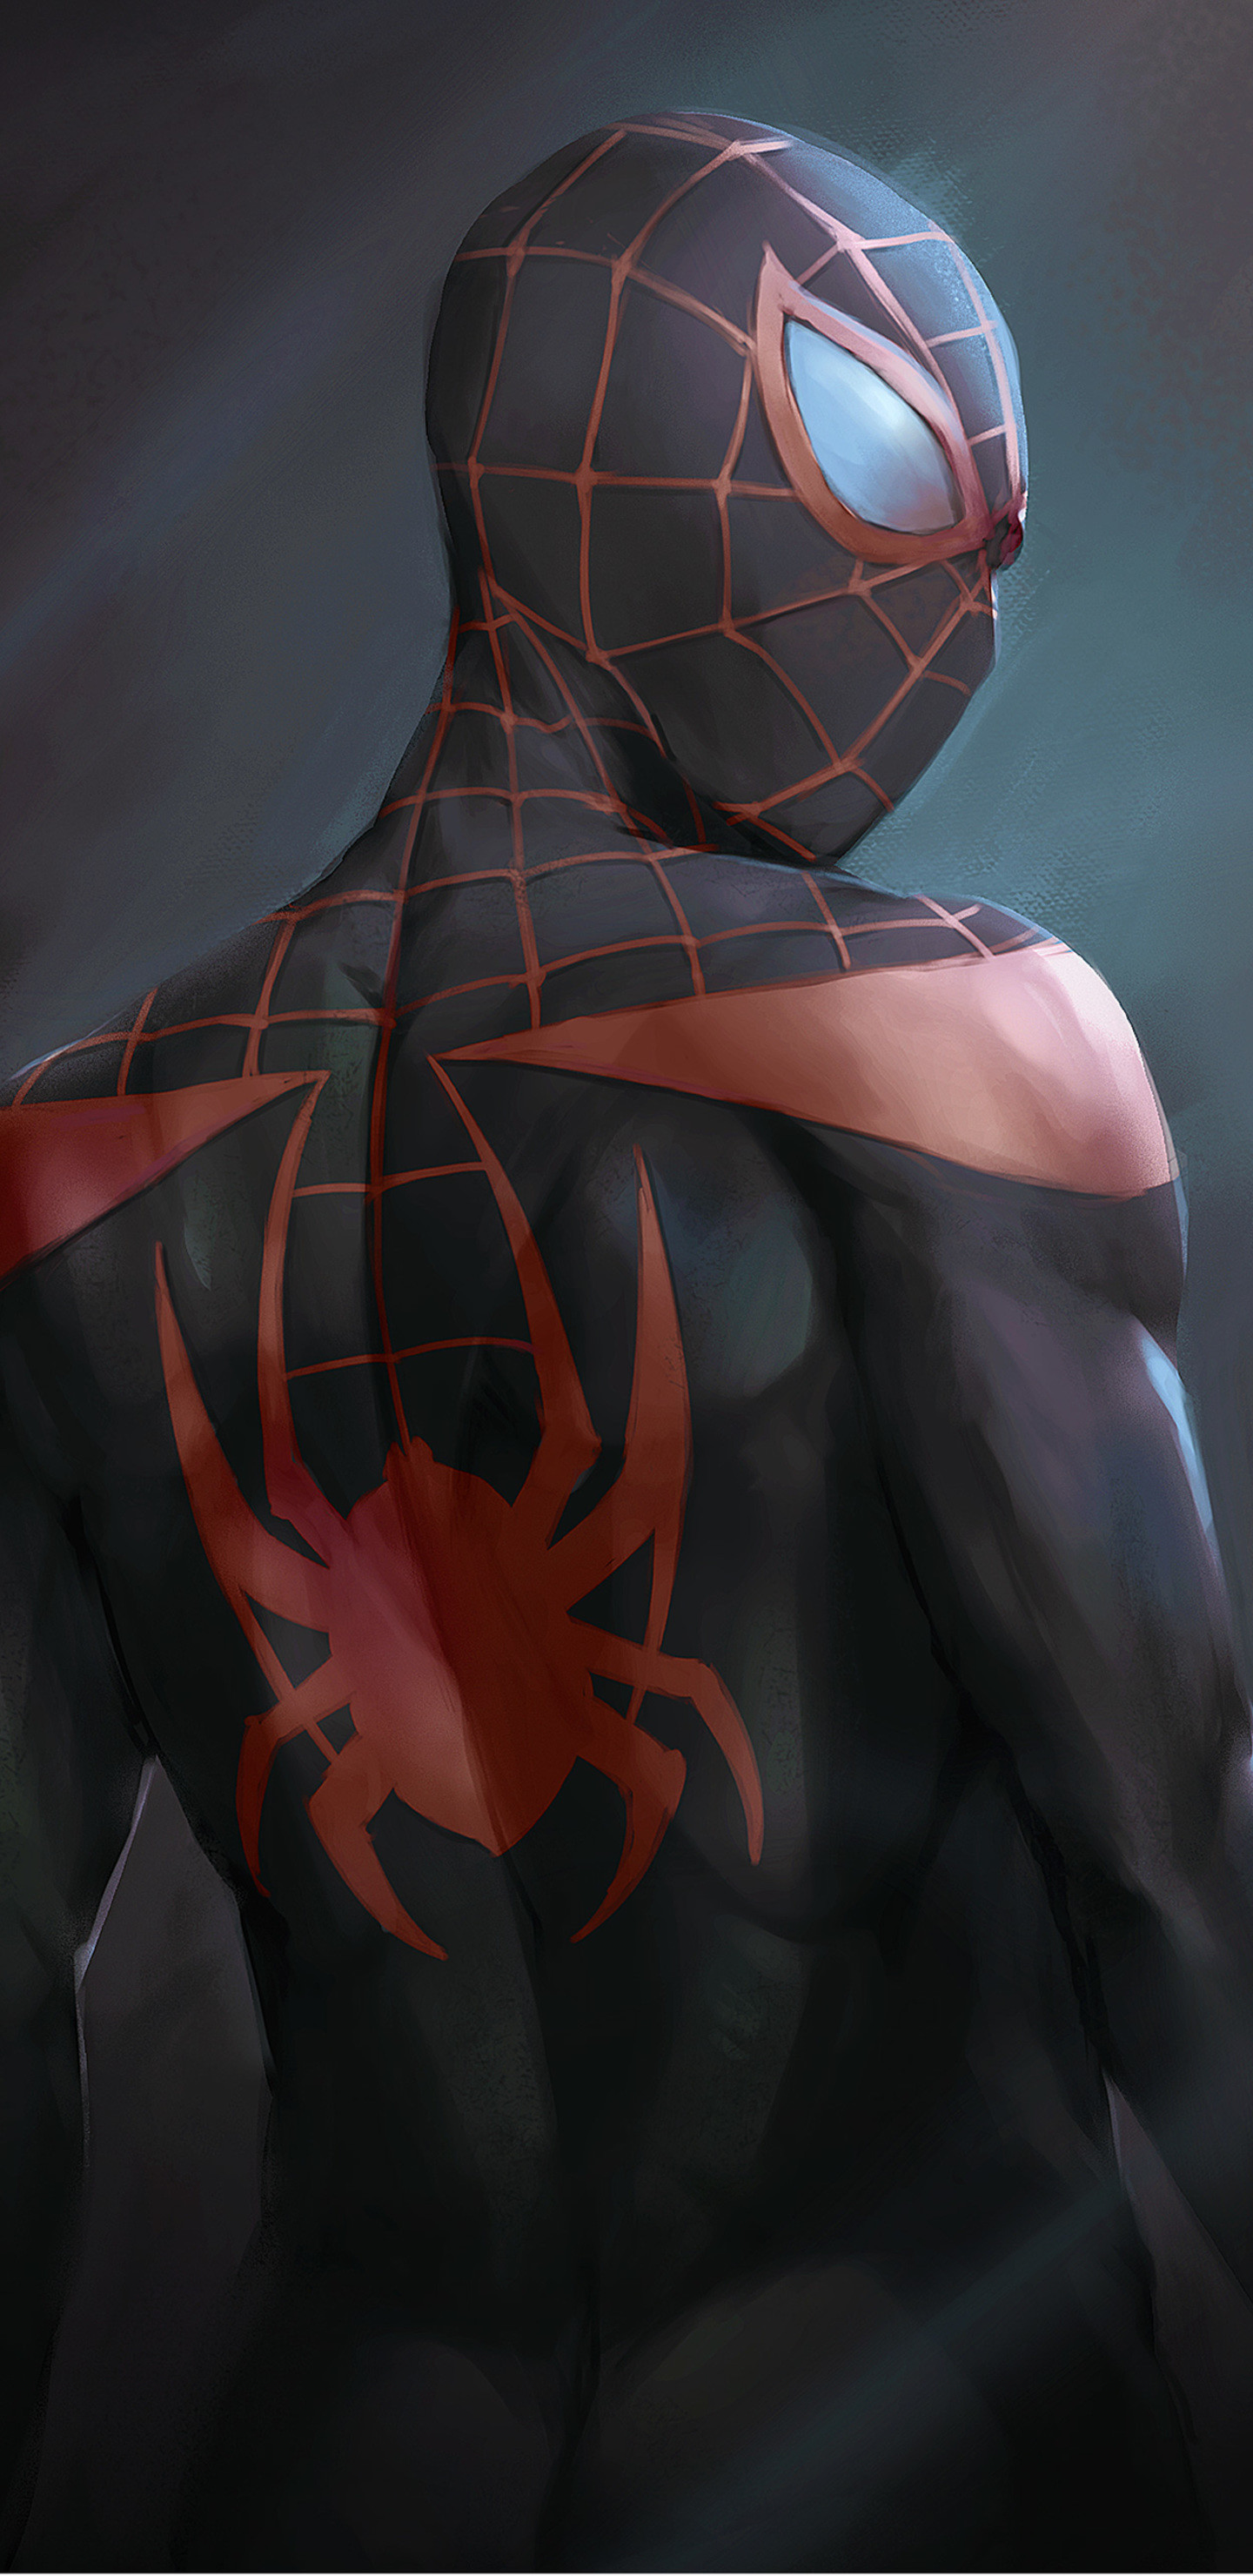 1440x2960 miles-morales-in-spider-man-into-the-spider-